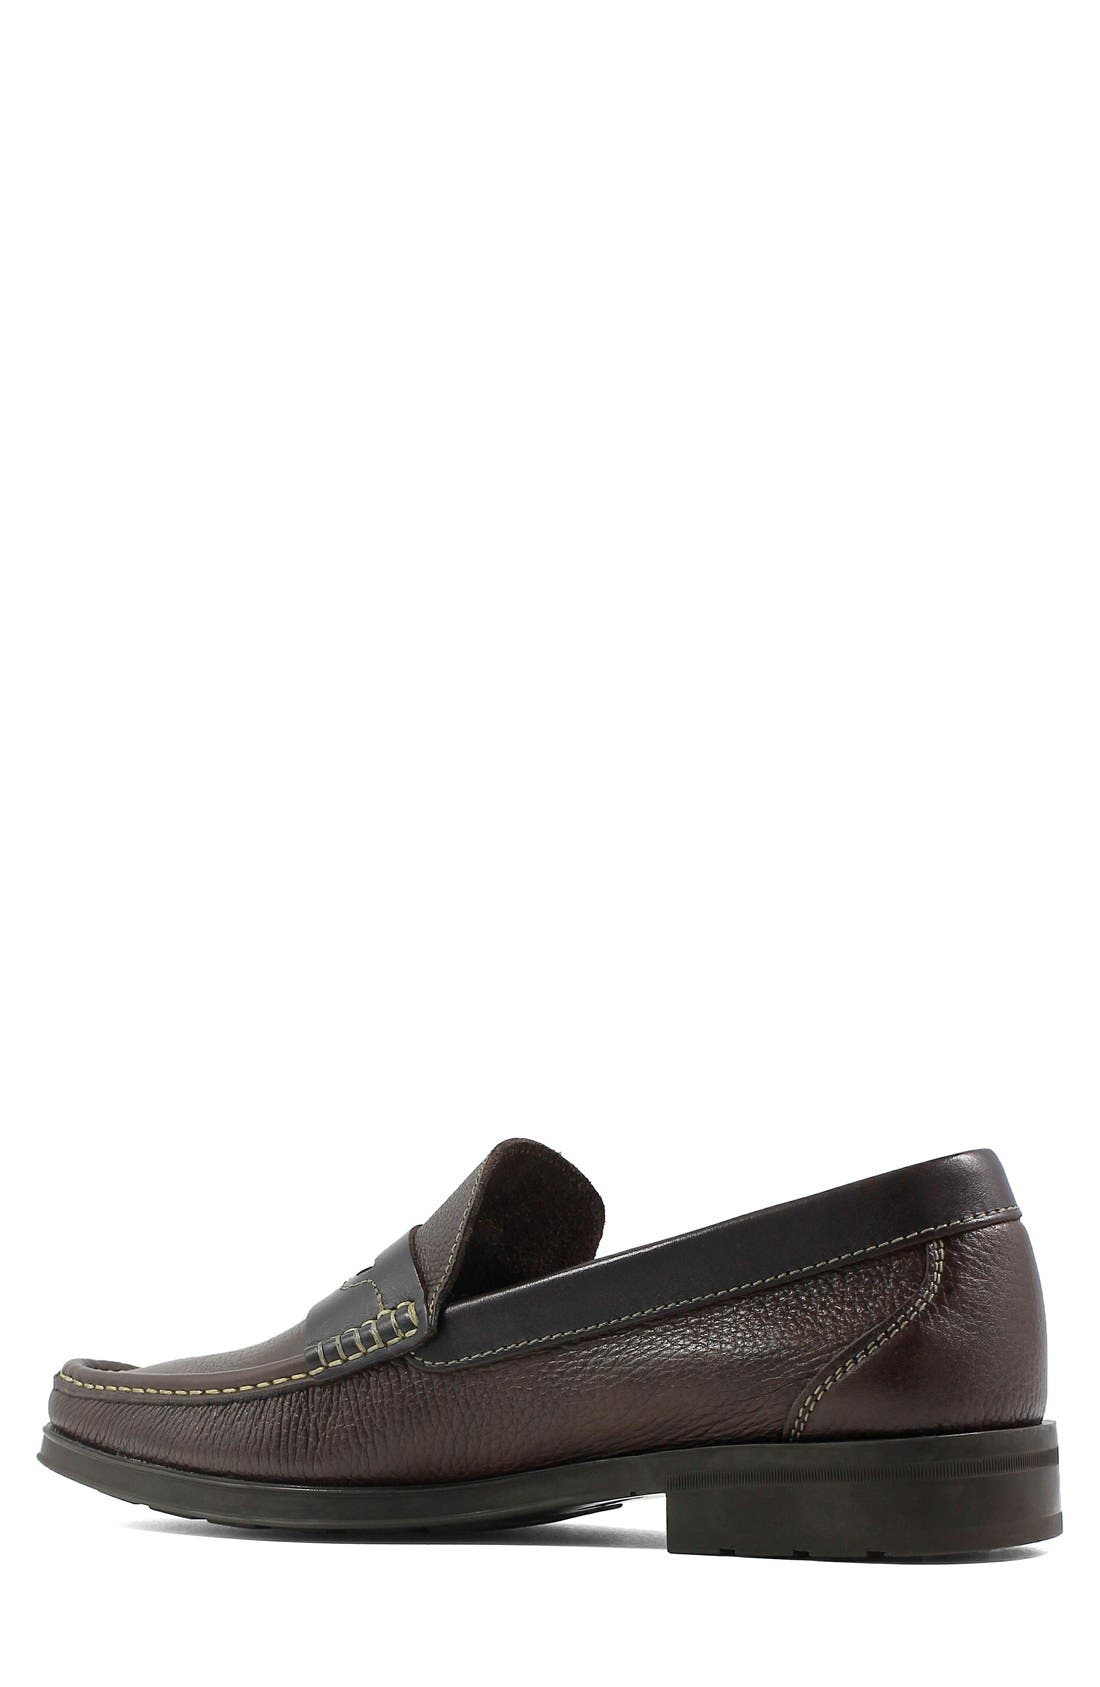 Westbrook Penny Loafer,                             Alternate thumbnail 2, color,                             Brown Milled Leather